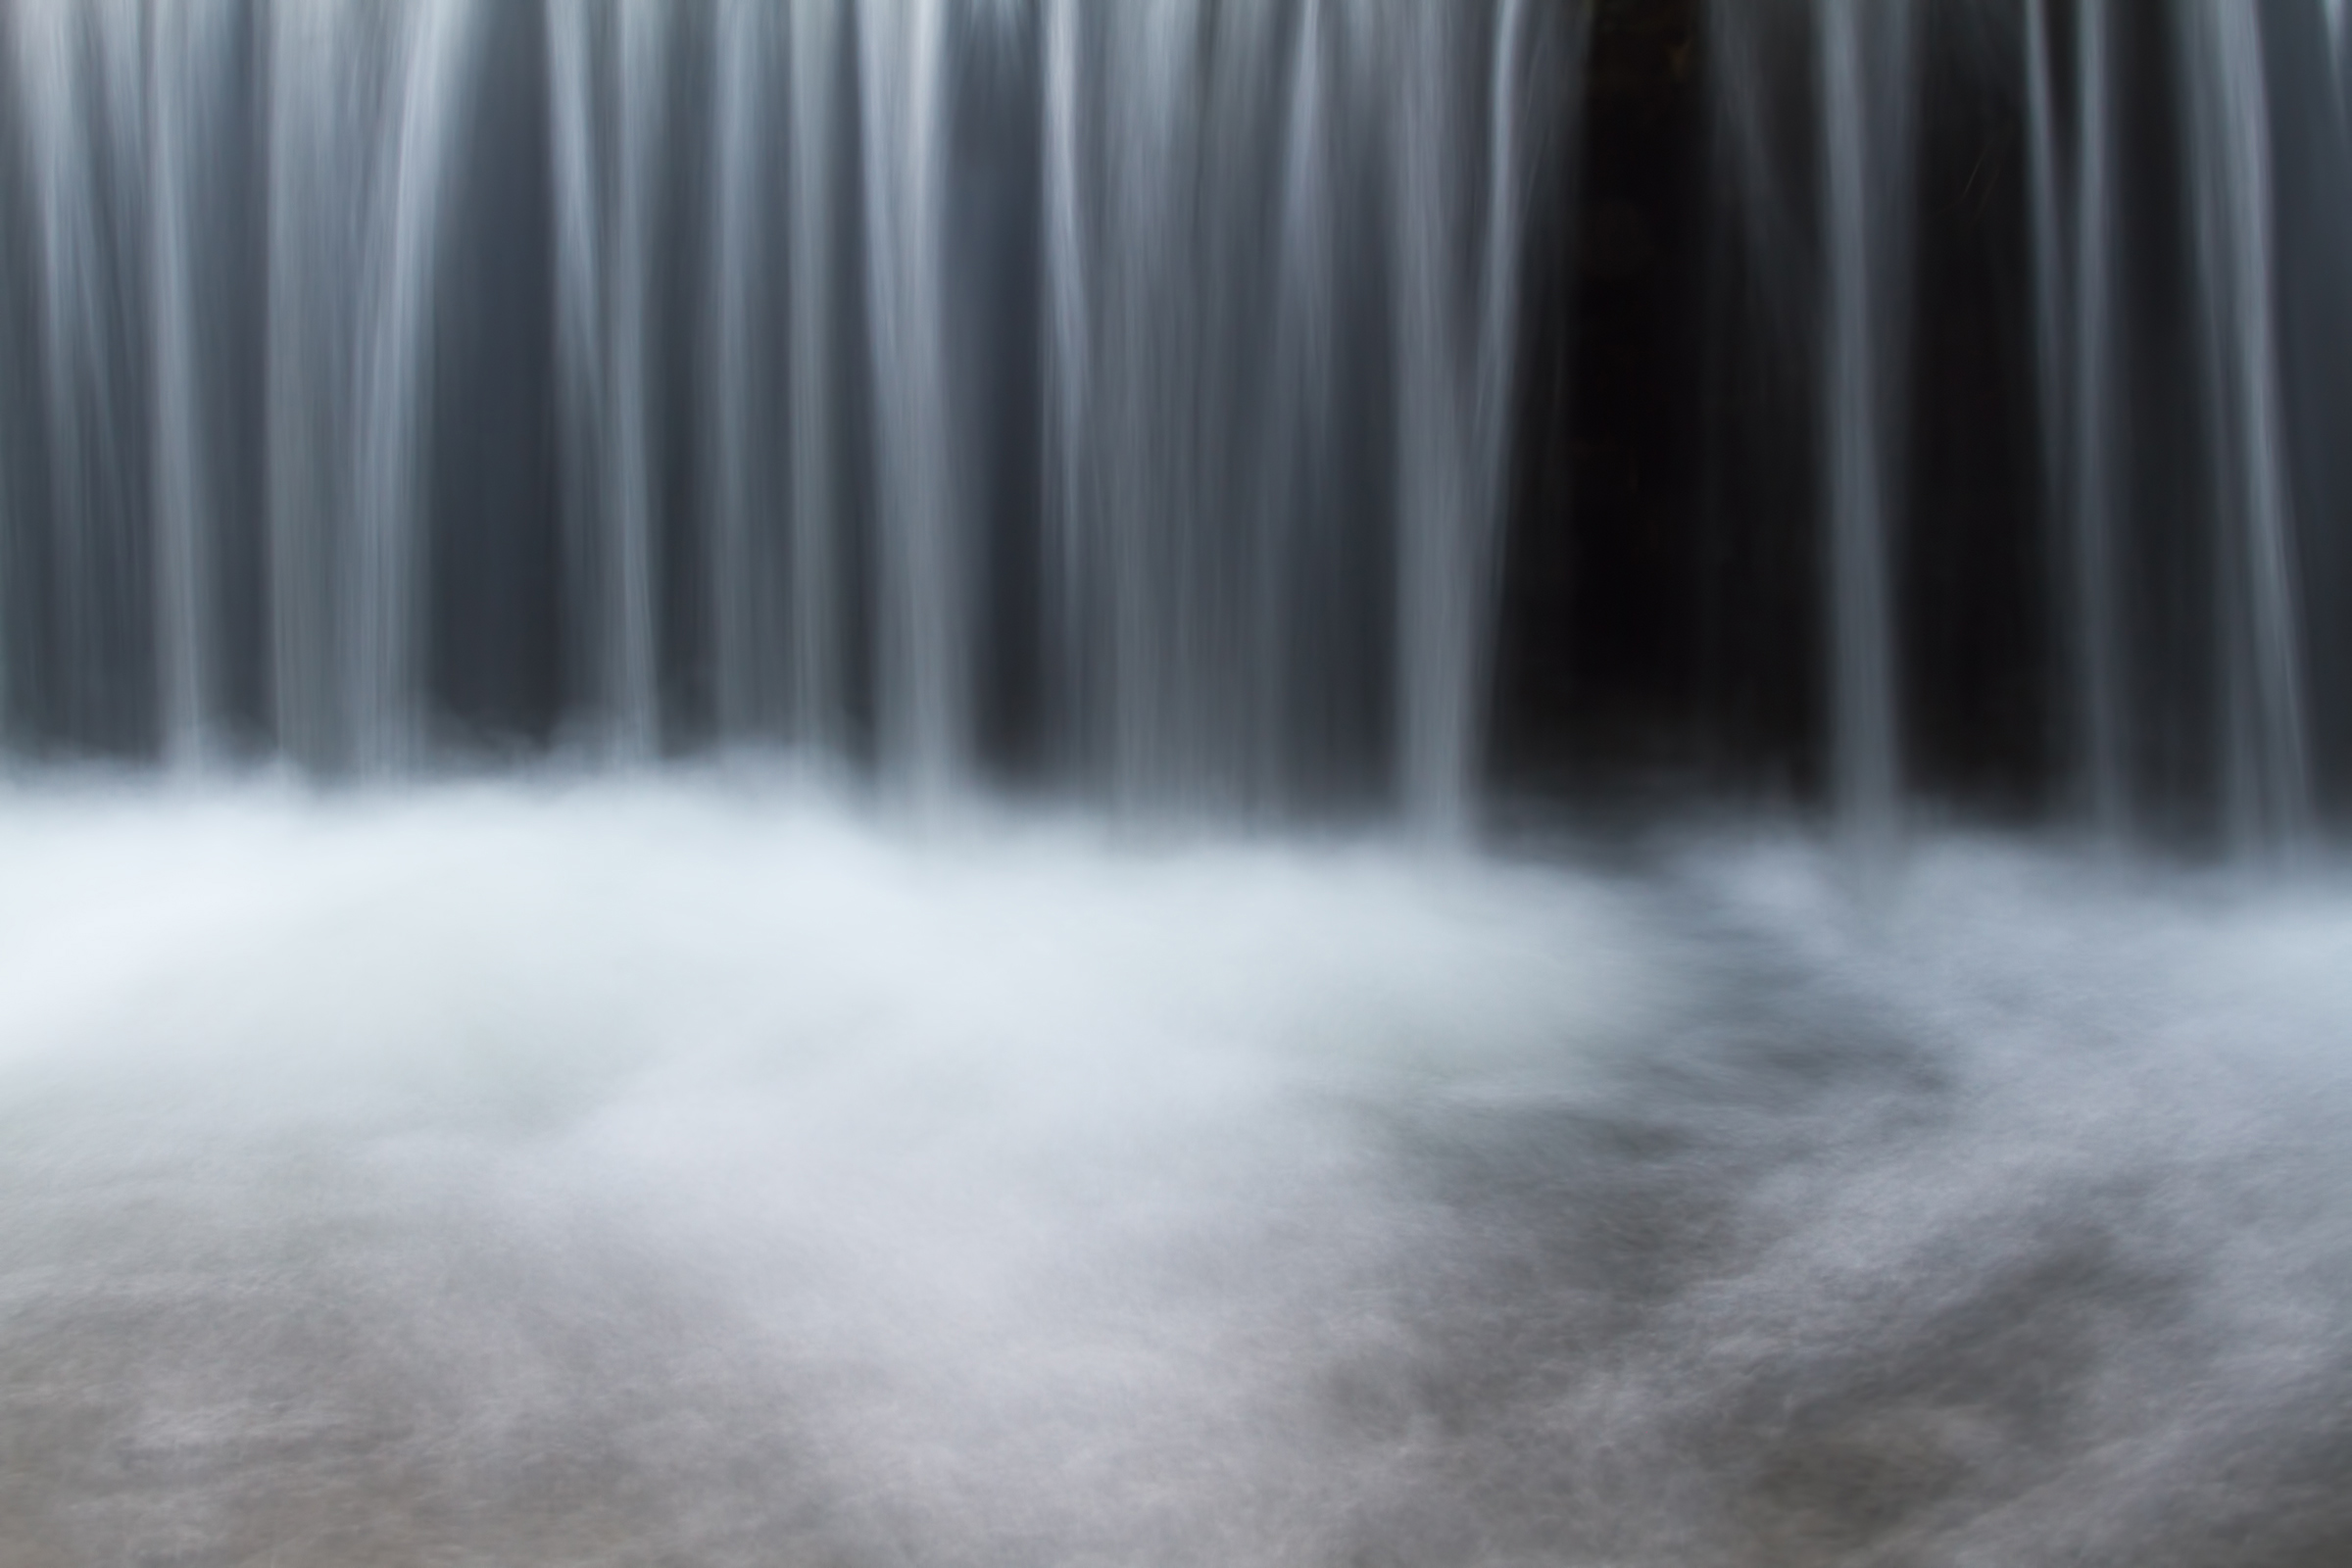 Waterfall, Blue, Serene, Rain, Rapid, HQ Photo